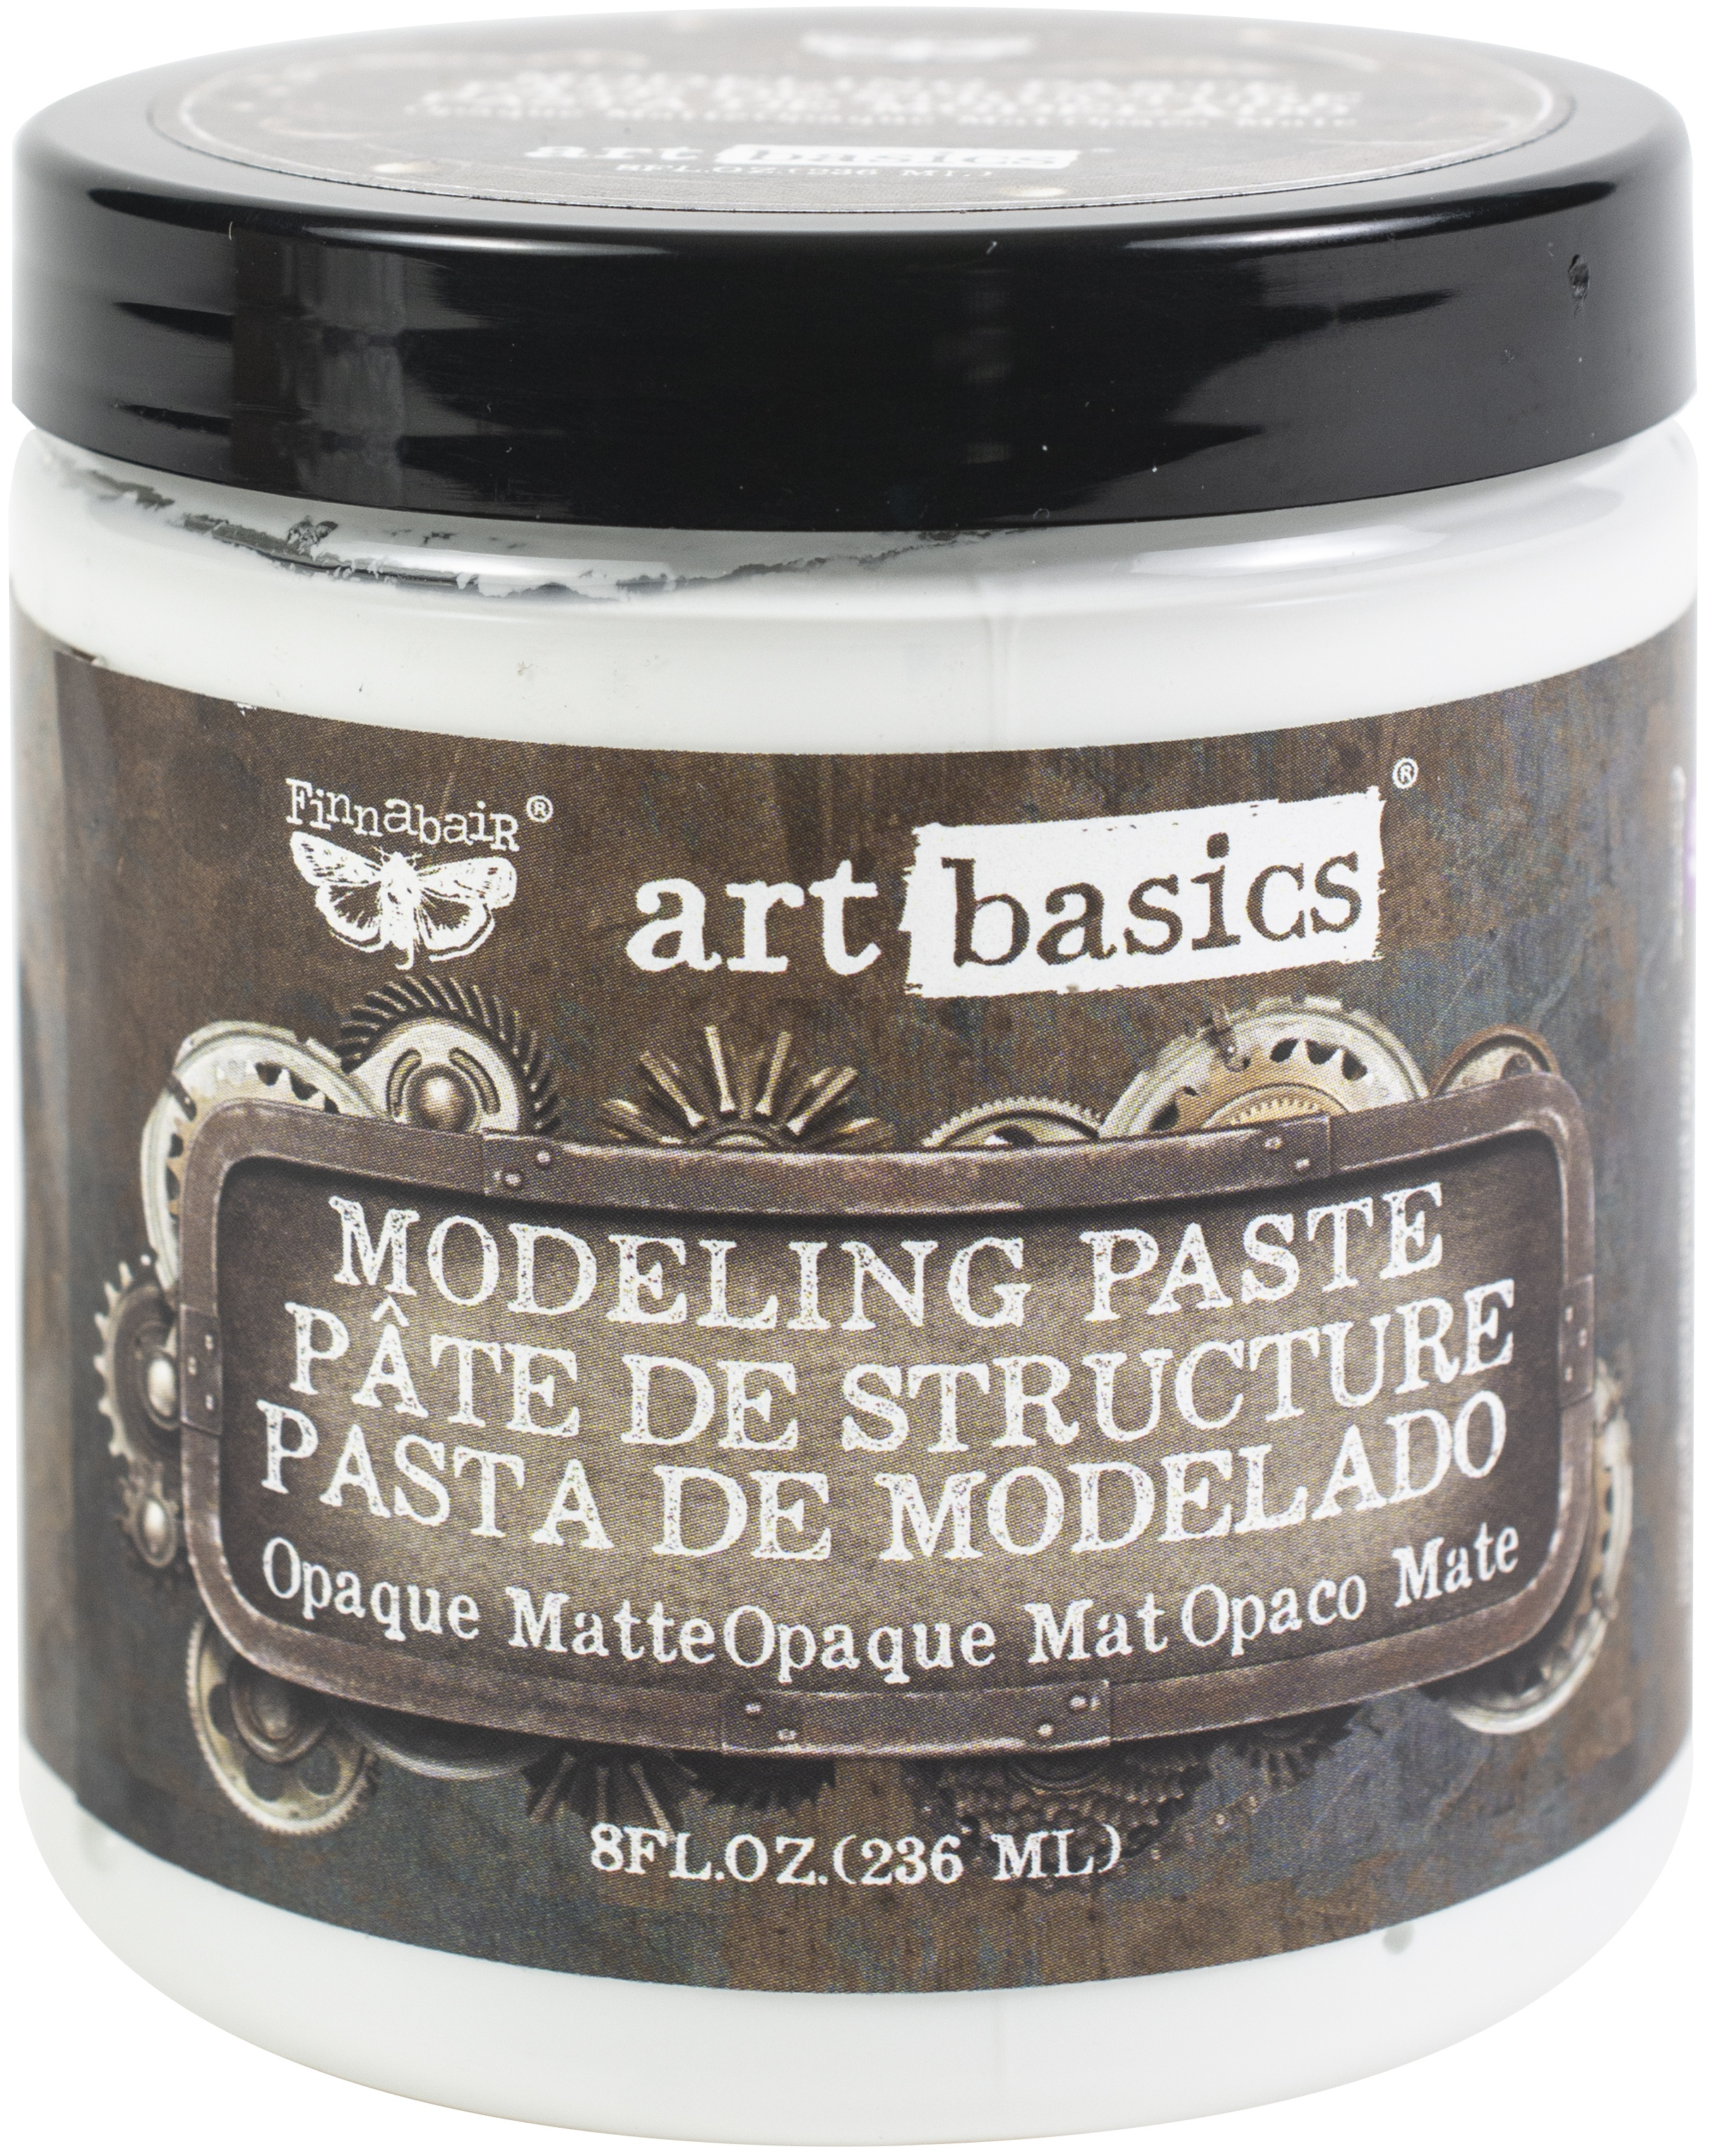 Finnabair Art Basics Modeling Paste - Opaque Matte 8oz